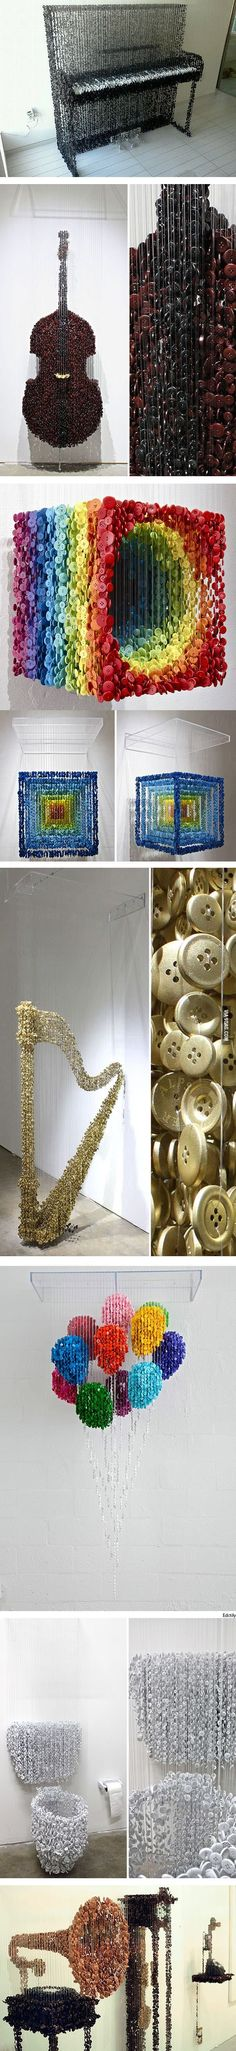 Amazing Sculptures Made From Buttons on Strings.